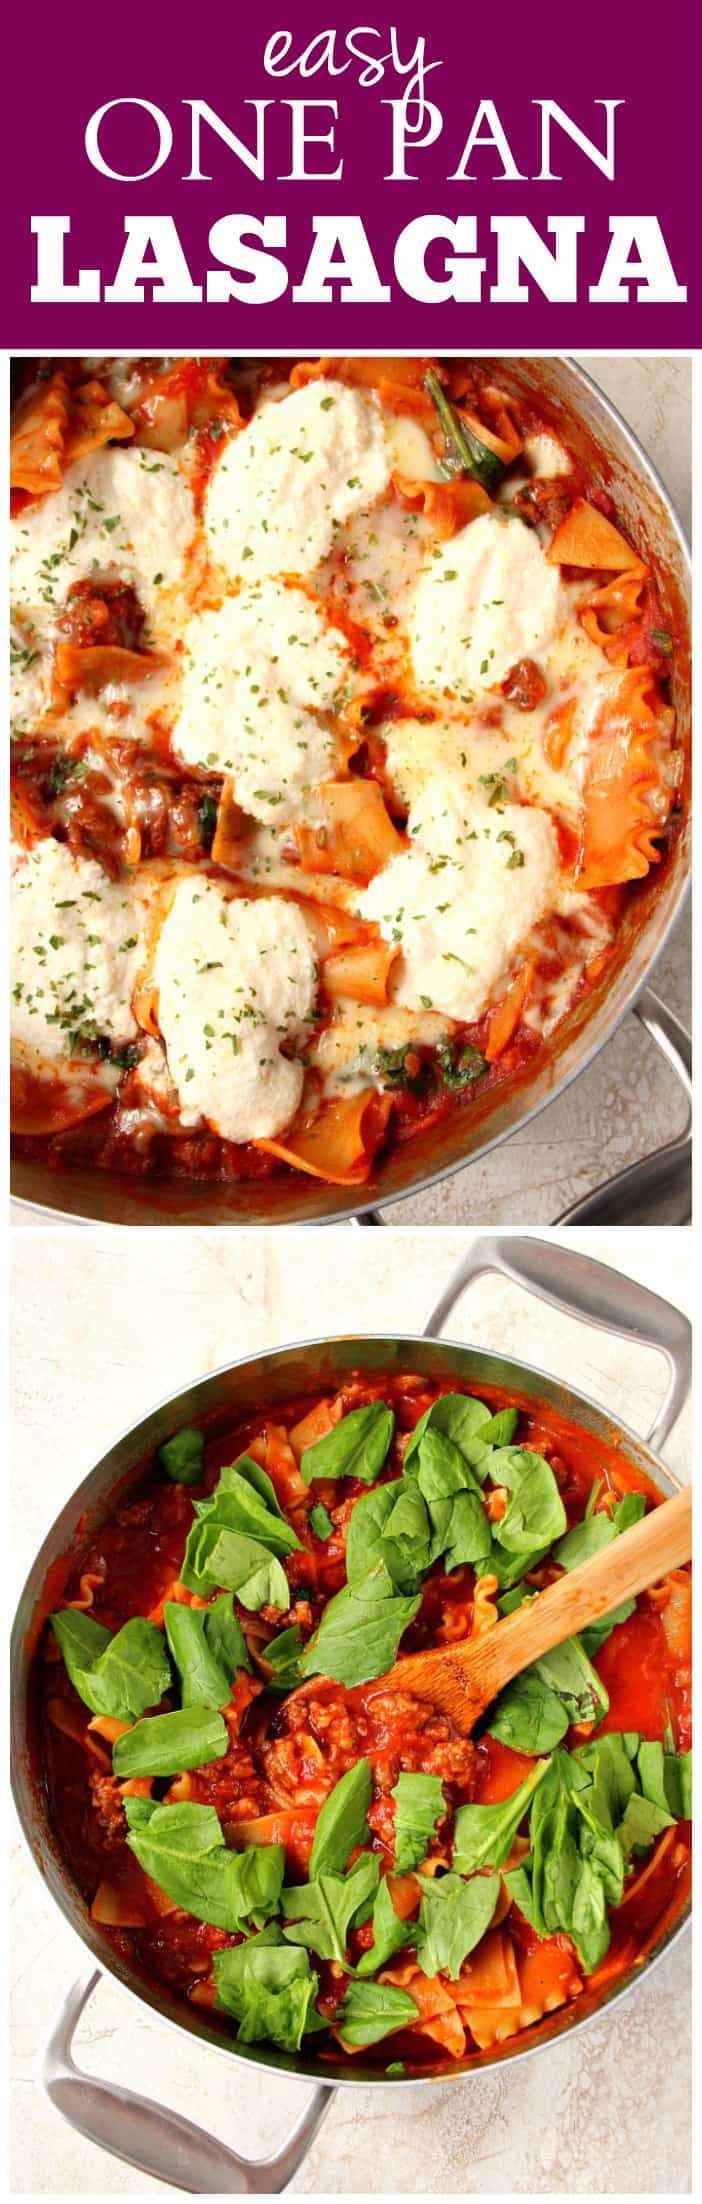 Lasagna recipes quick and easy